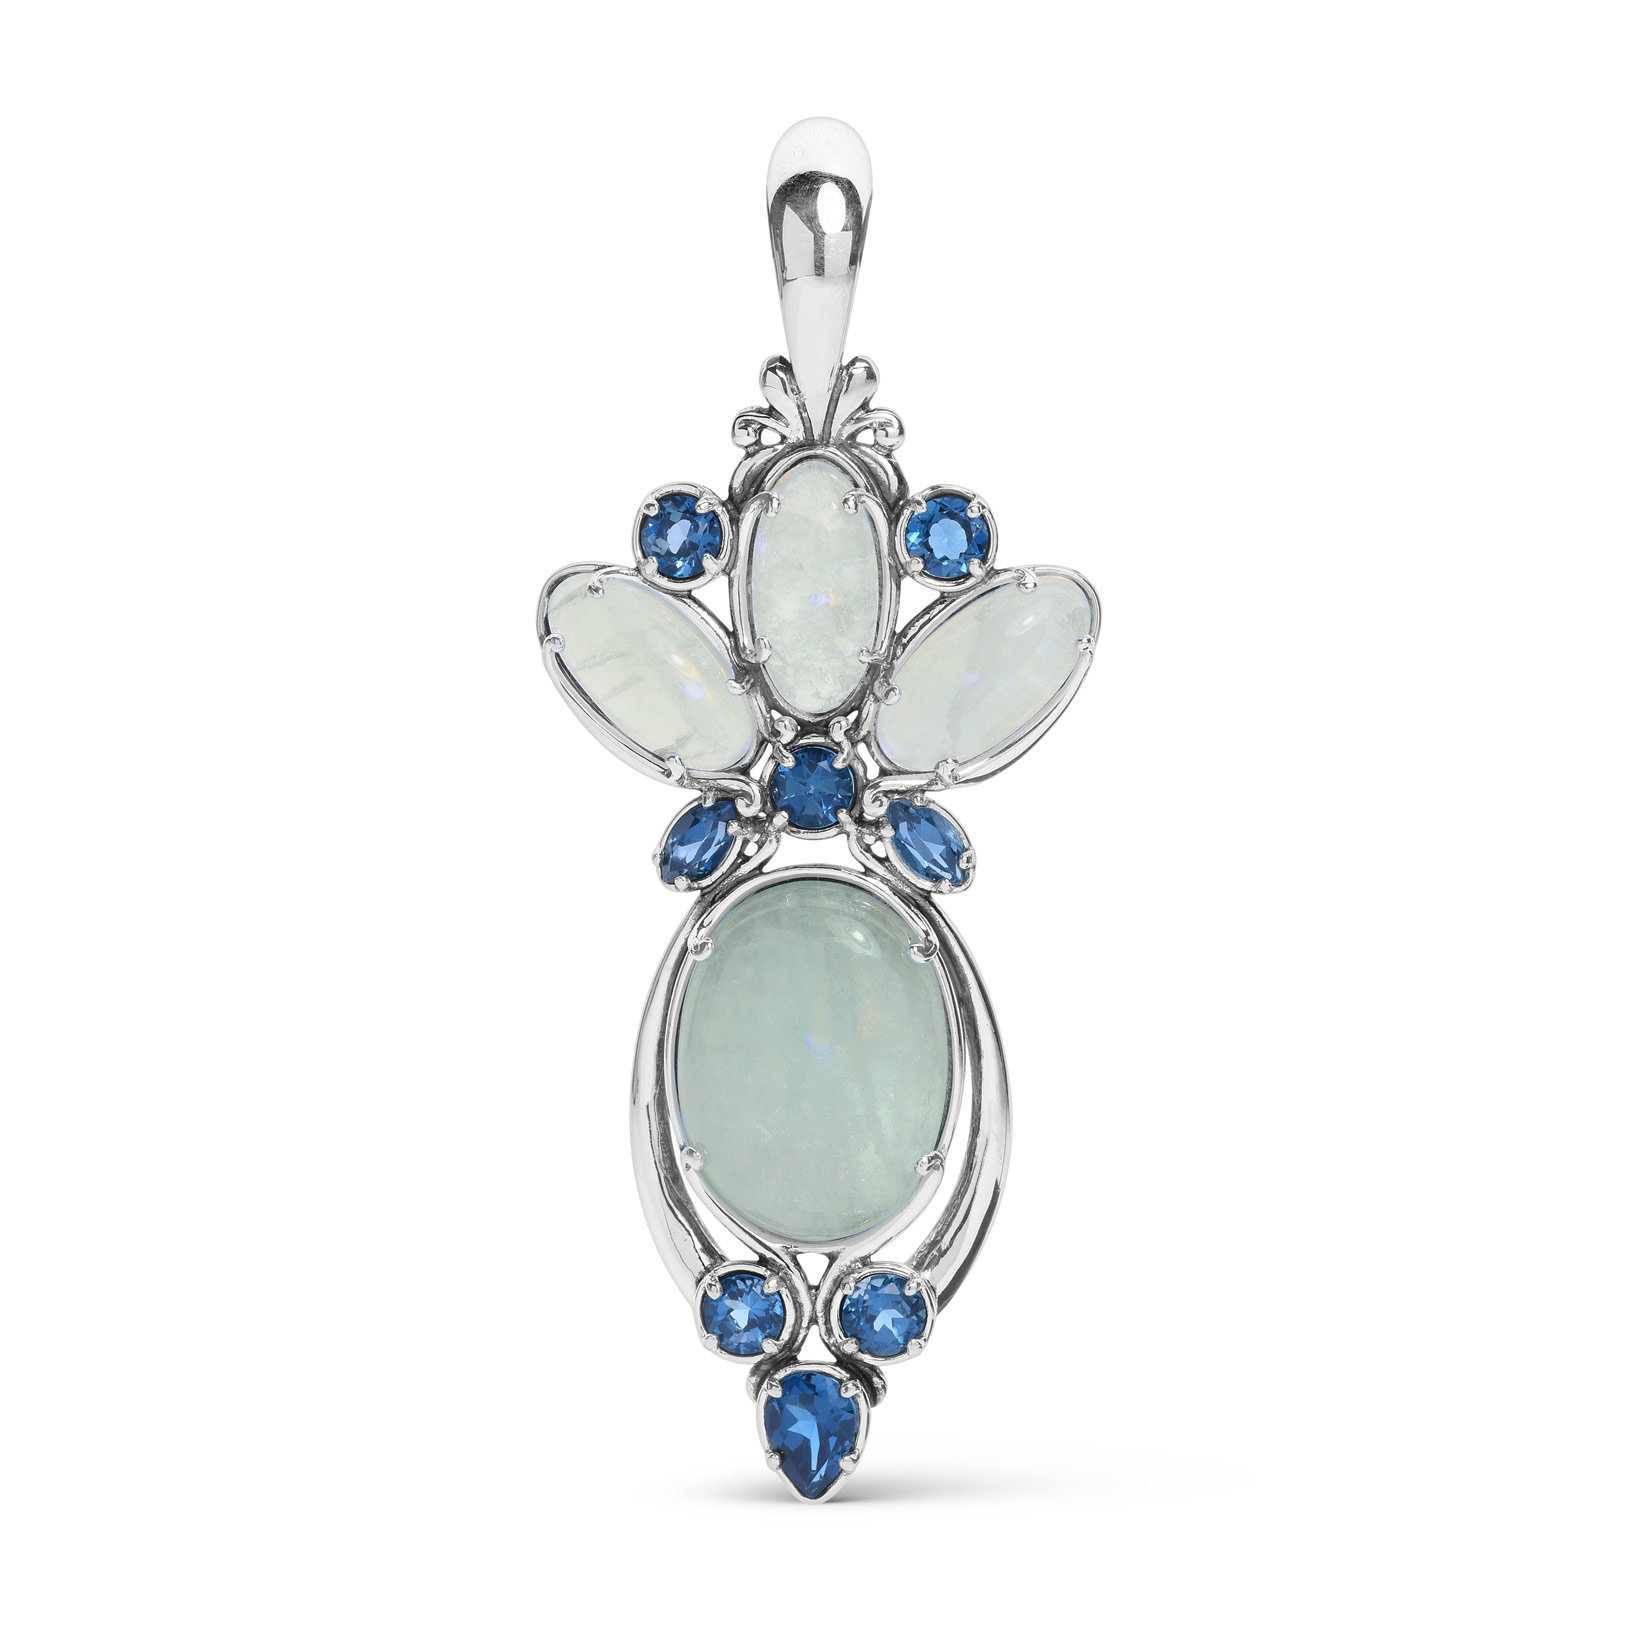 Couture_Limited_Edition_925_Sterling_Silver_Aquamarine_and_Blue_Topaz_Gemstone_Drop_Pendant_Enhancer